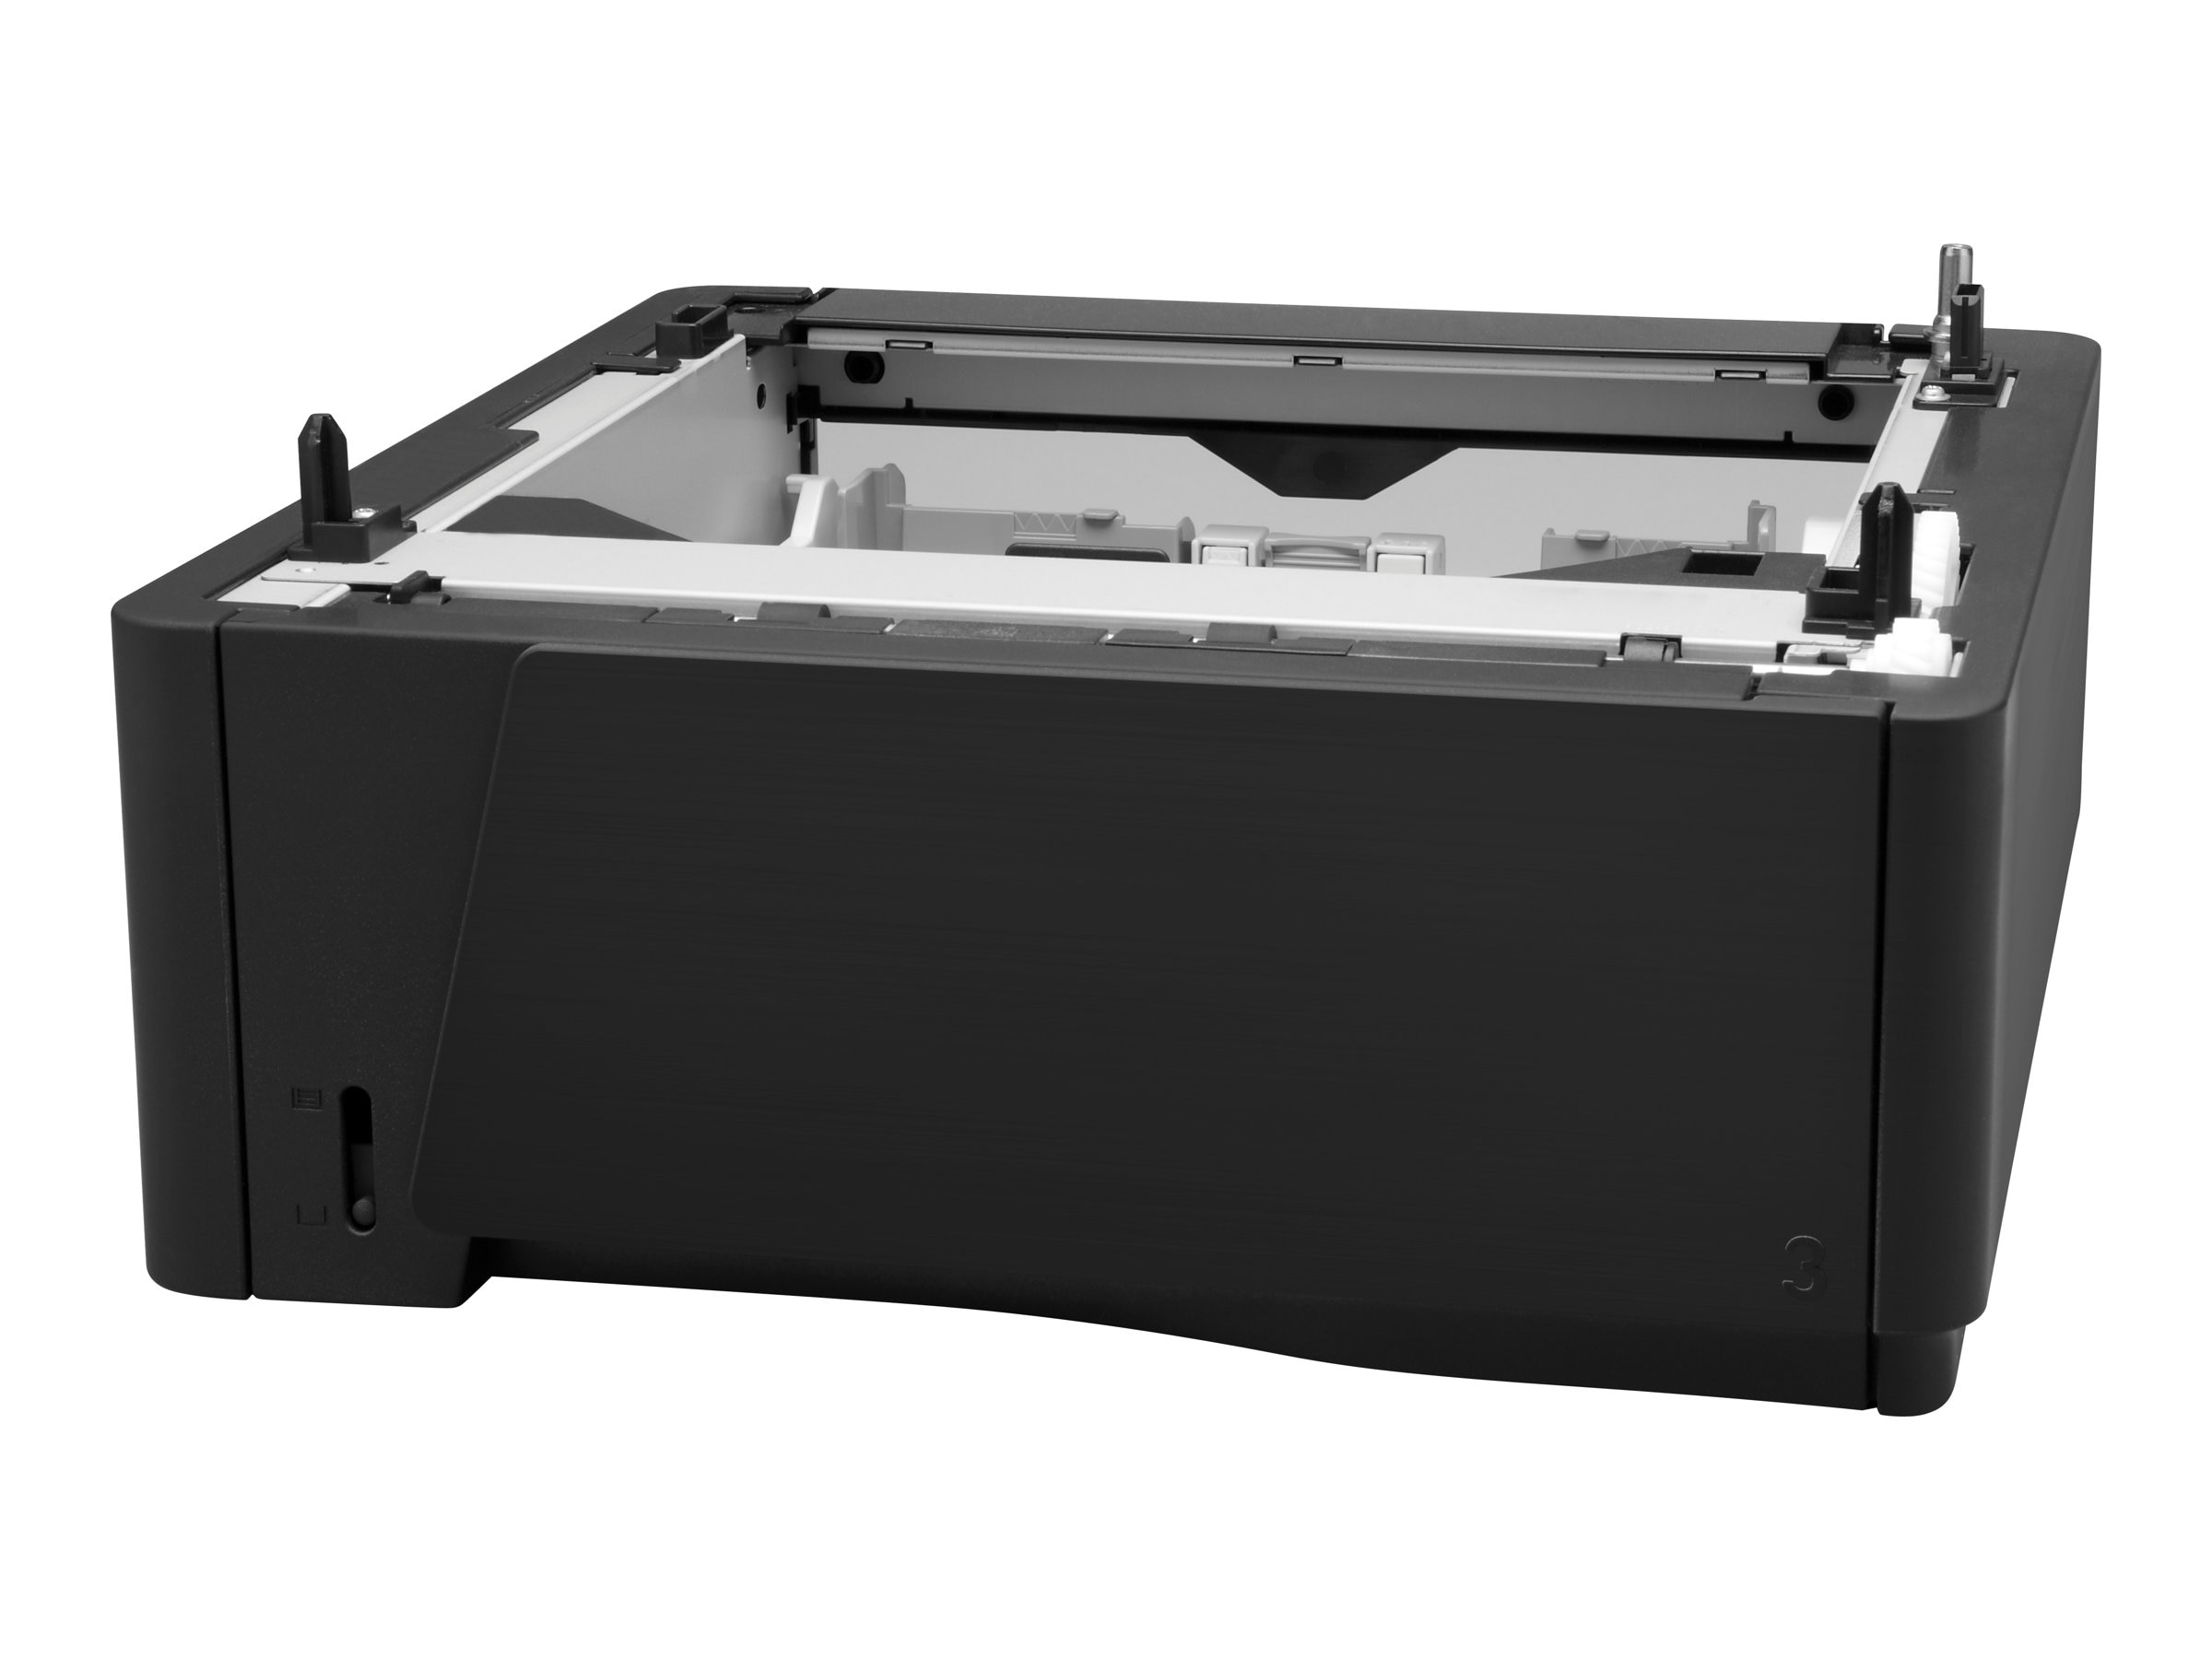 Open Box HP 500-Sheet Feeder for HP LaserJet Pro 400 M401 Series Printers, CF284A, 30803040, Printers - Input Trays/Feeders